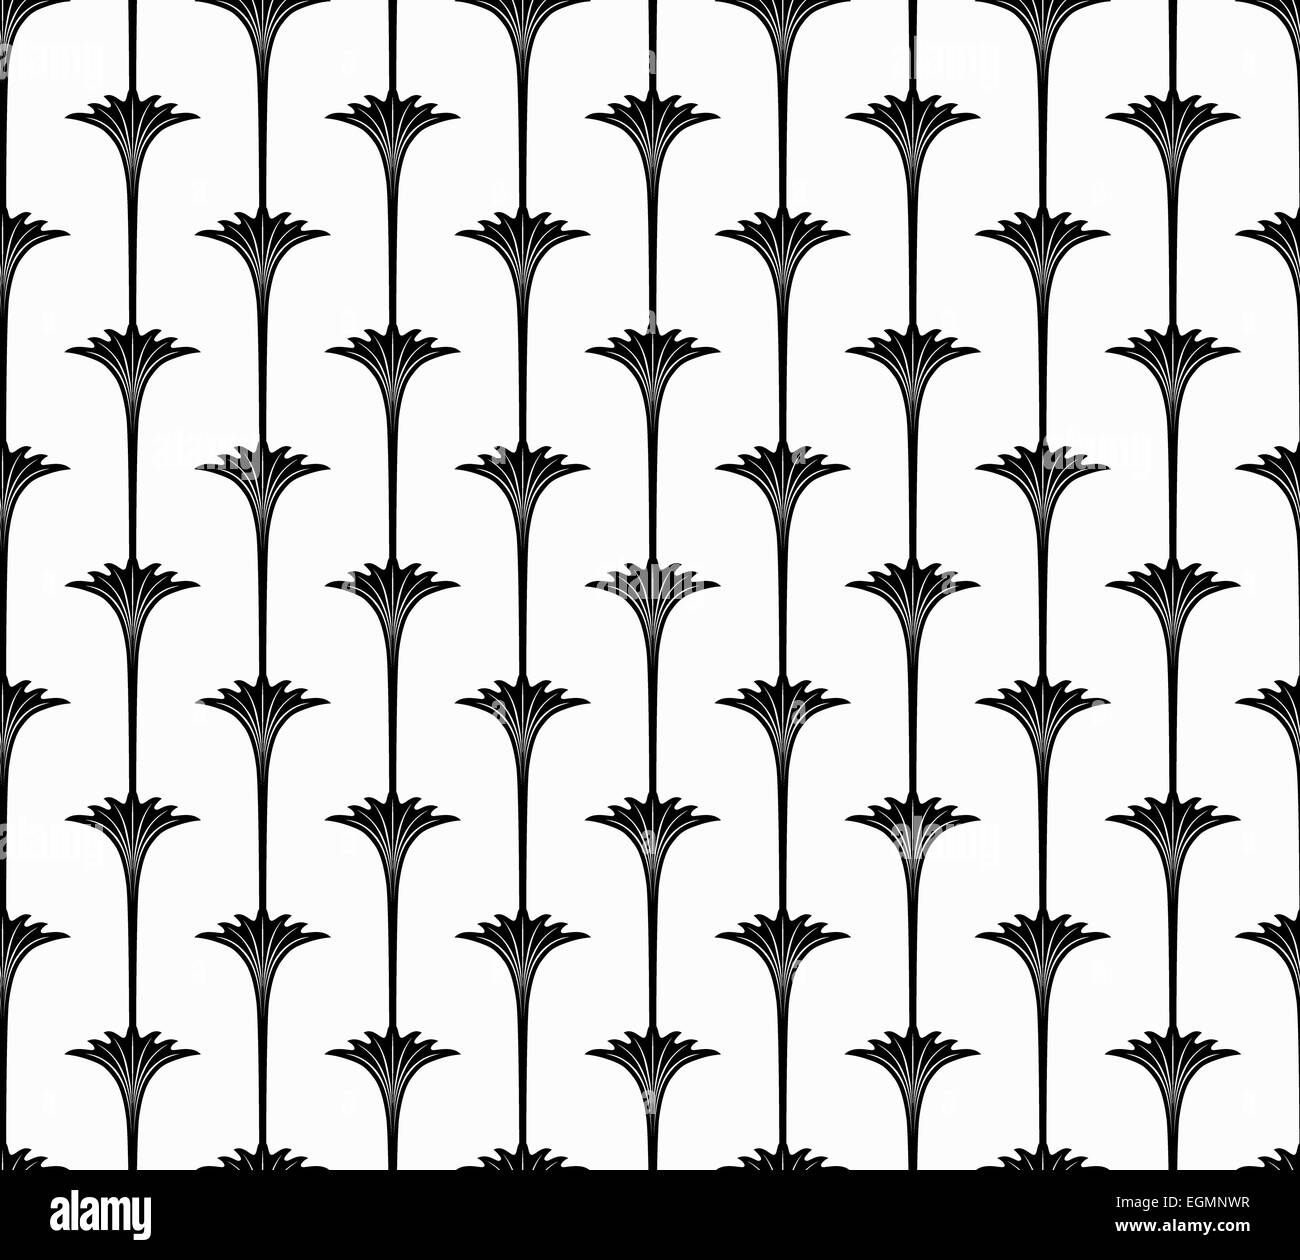 Elegant Black Floral Seamless Pattern from Simple Flowers with Long Stems on White Background - Stock Image